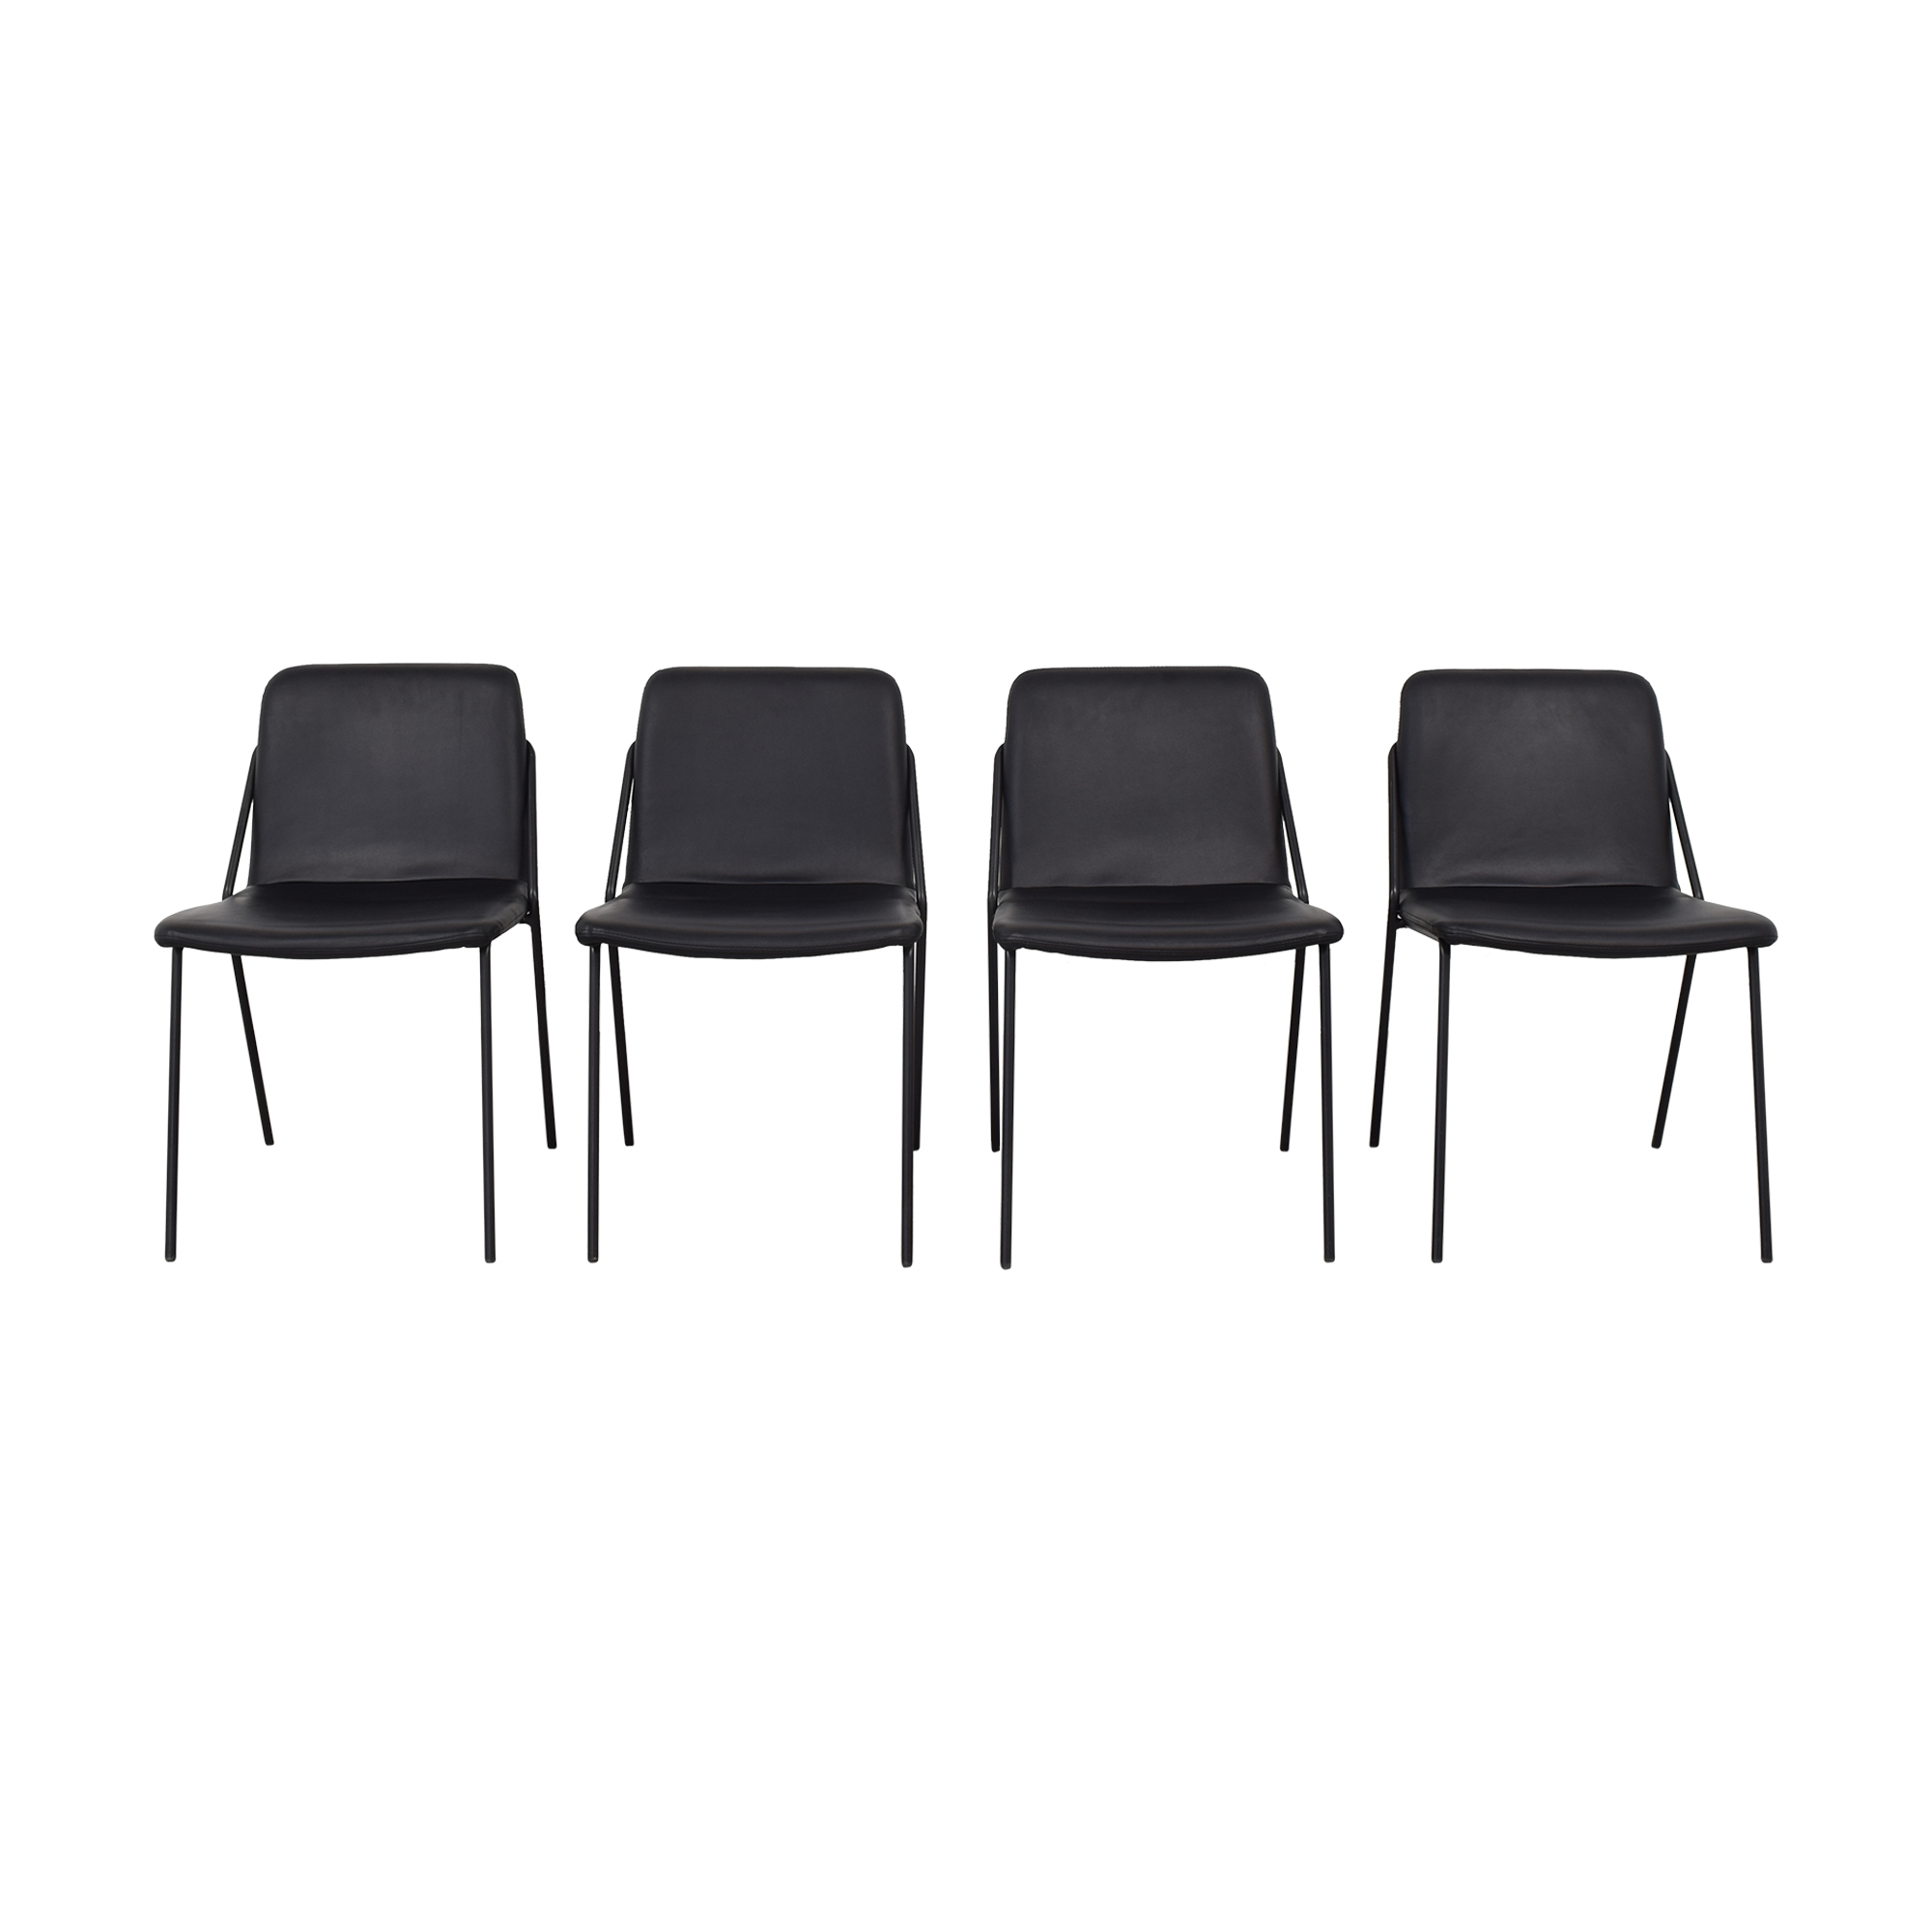 m.a.d. m.a.d. Black Sling Upholstered Chairs Dining Chairs